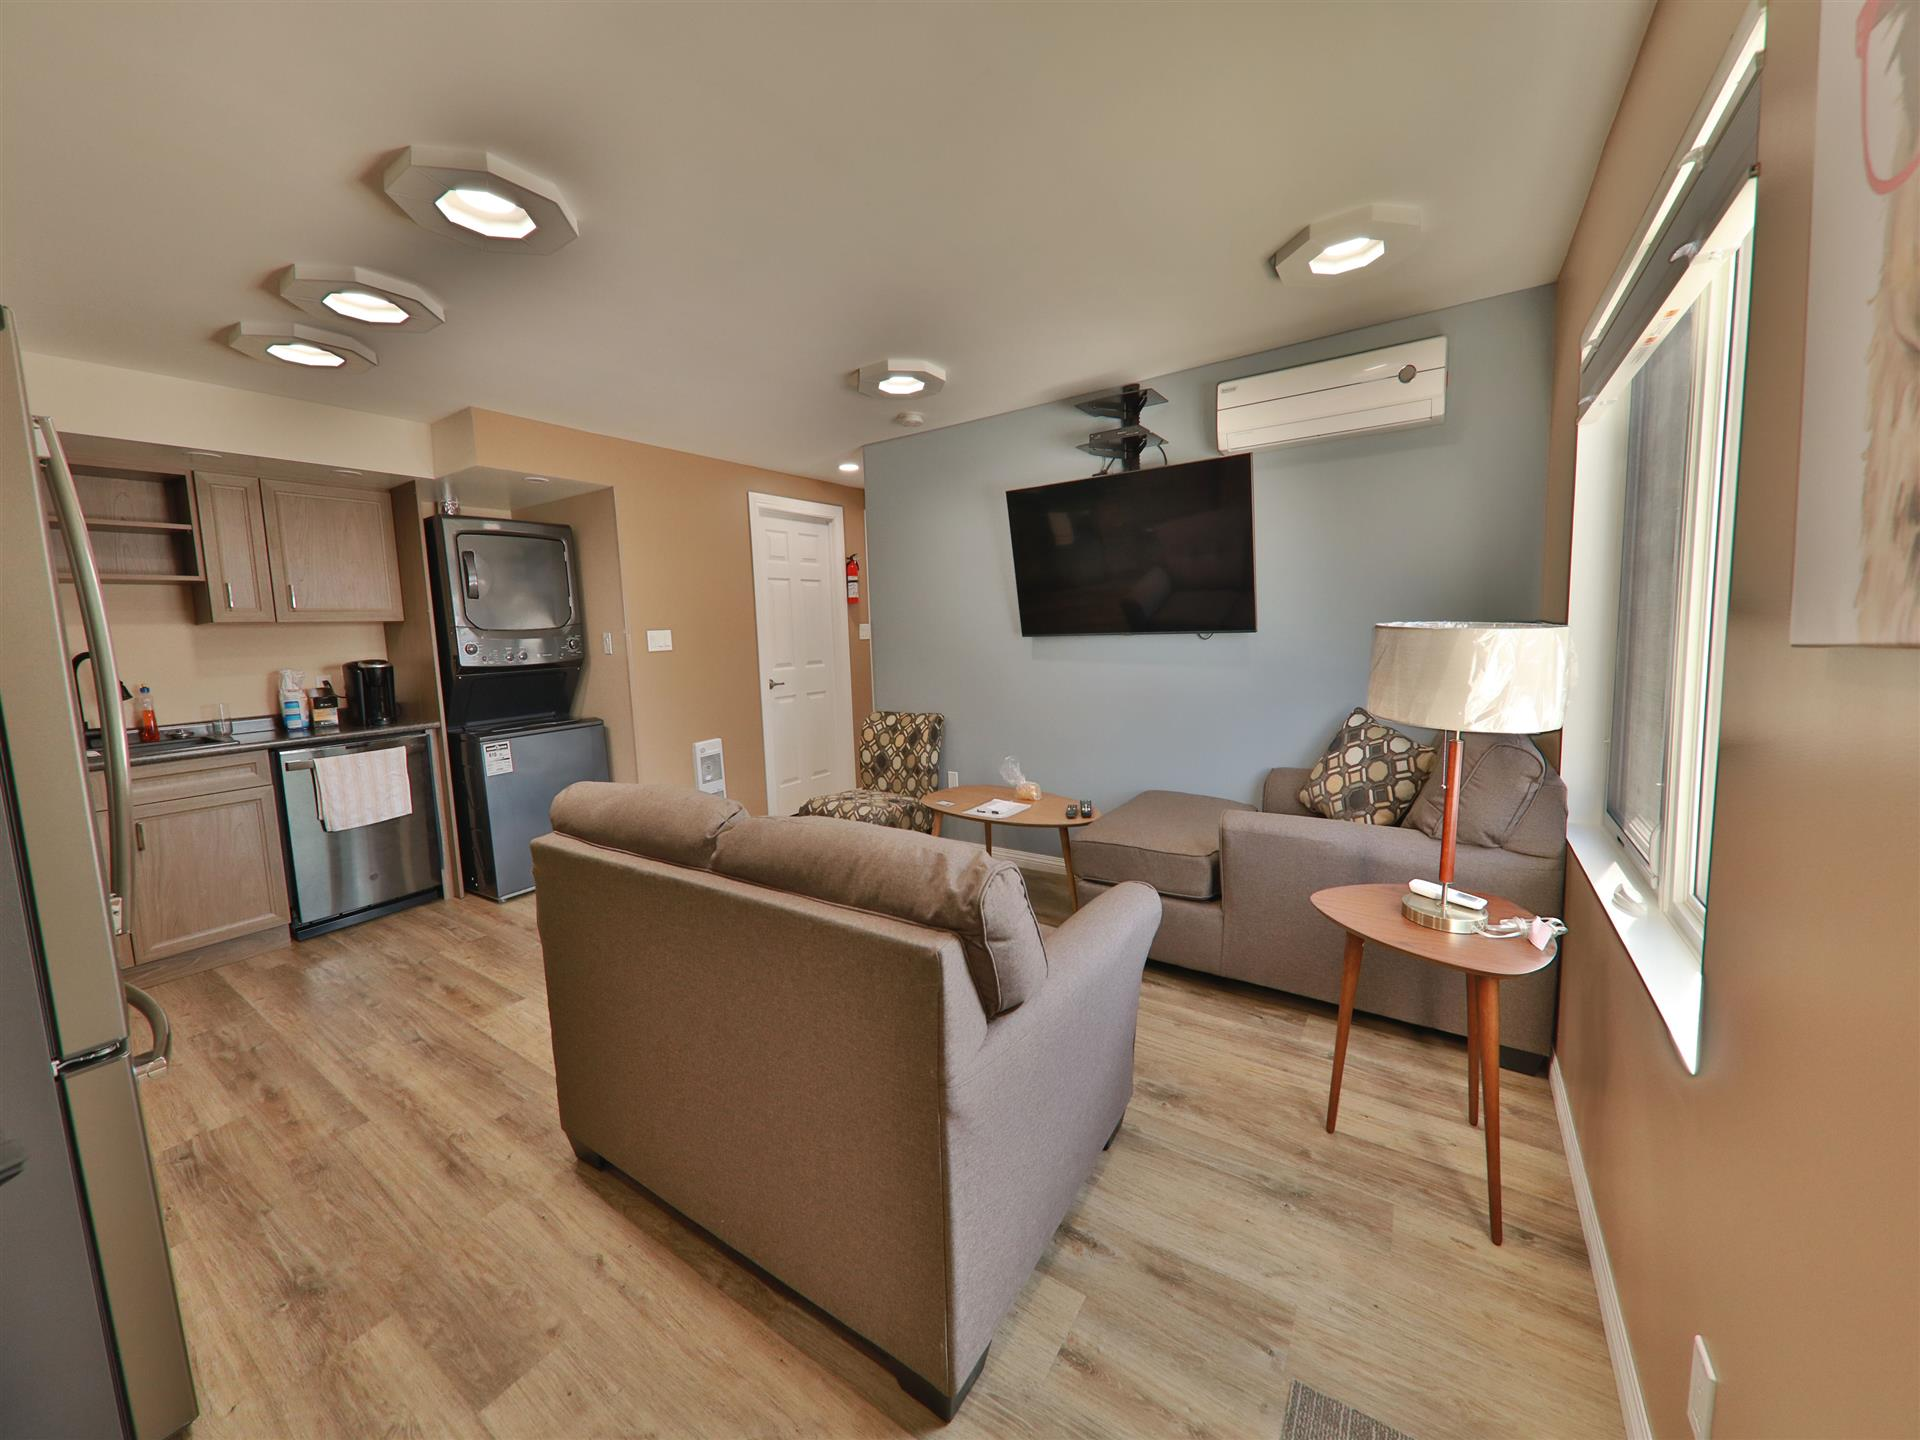 Living area with kitchen, TV mounted and couchs